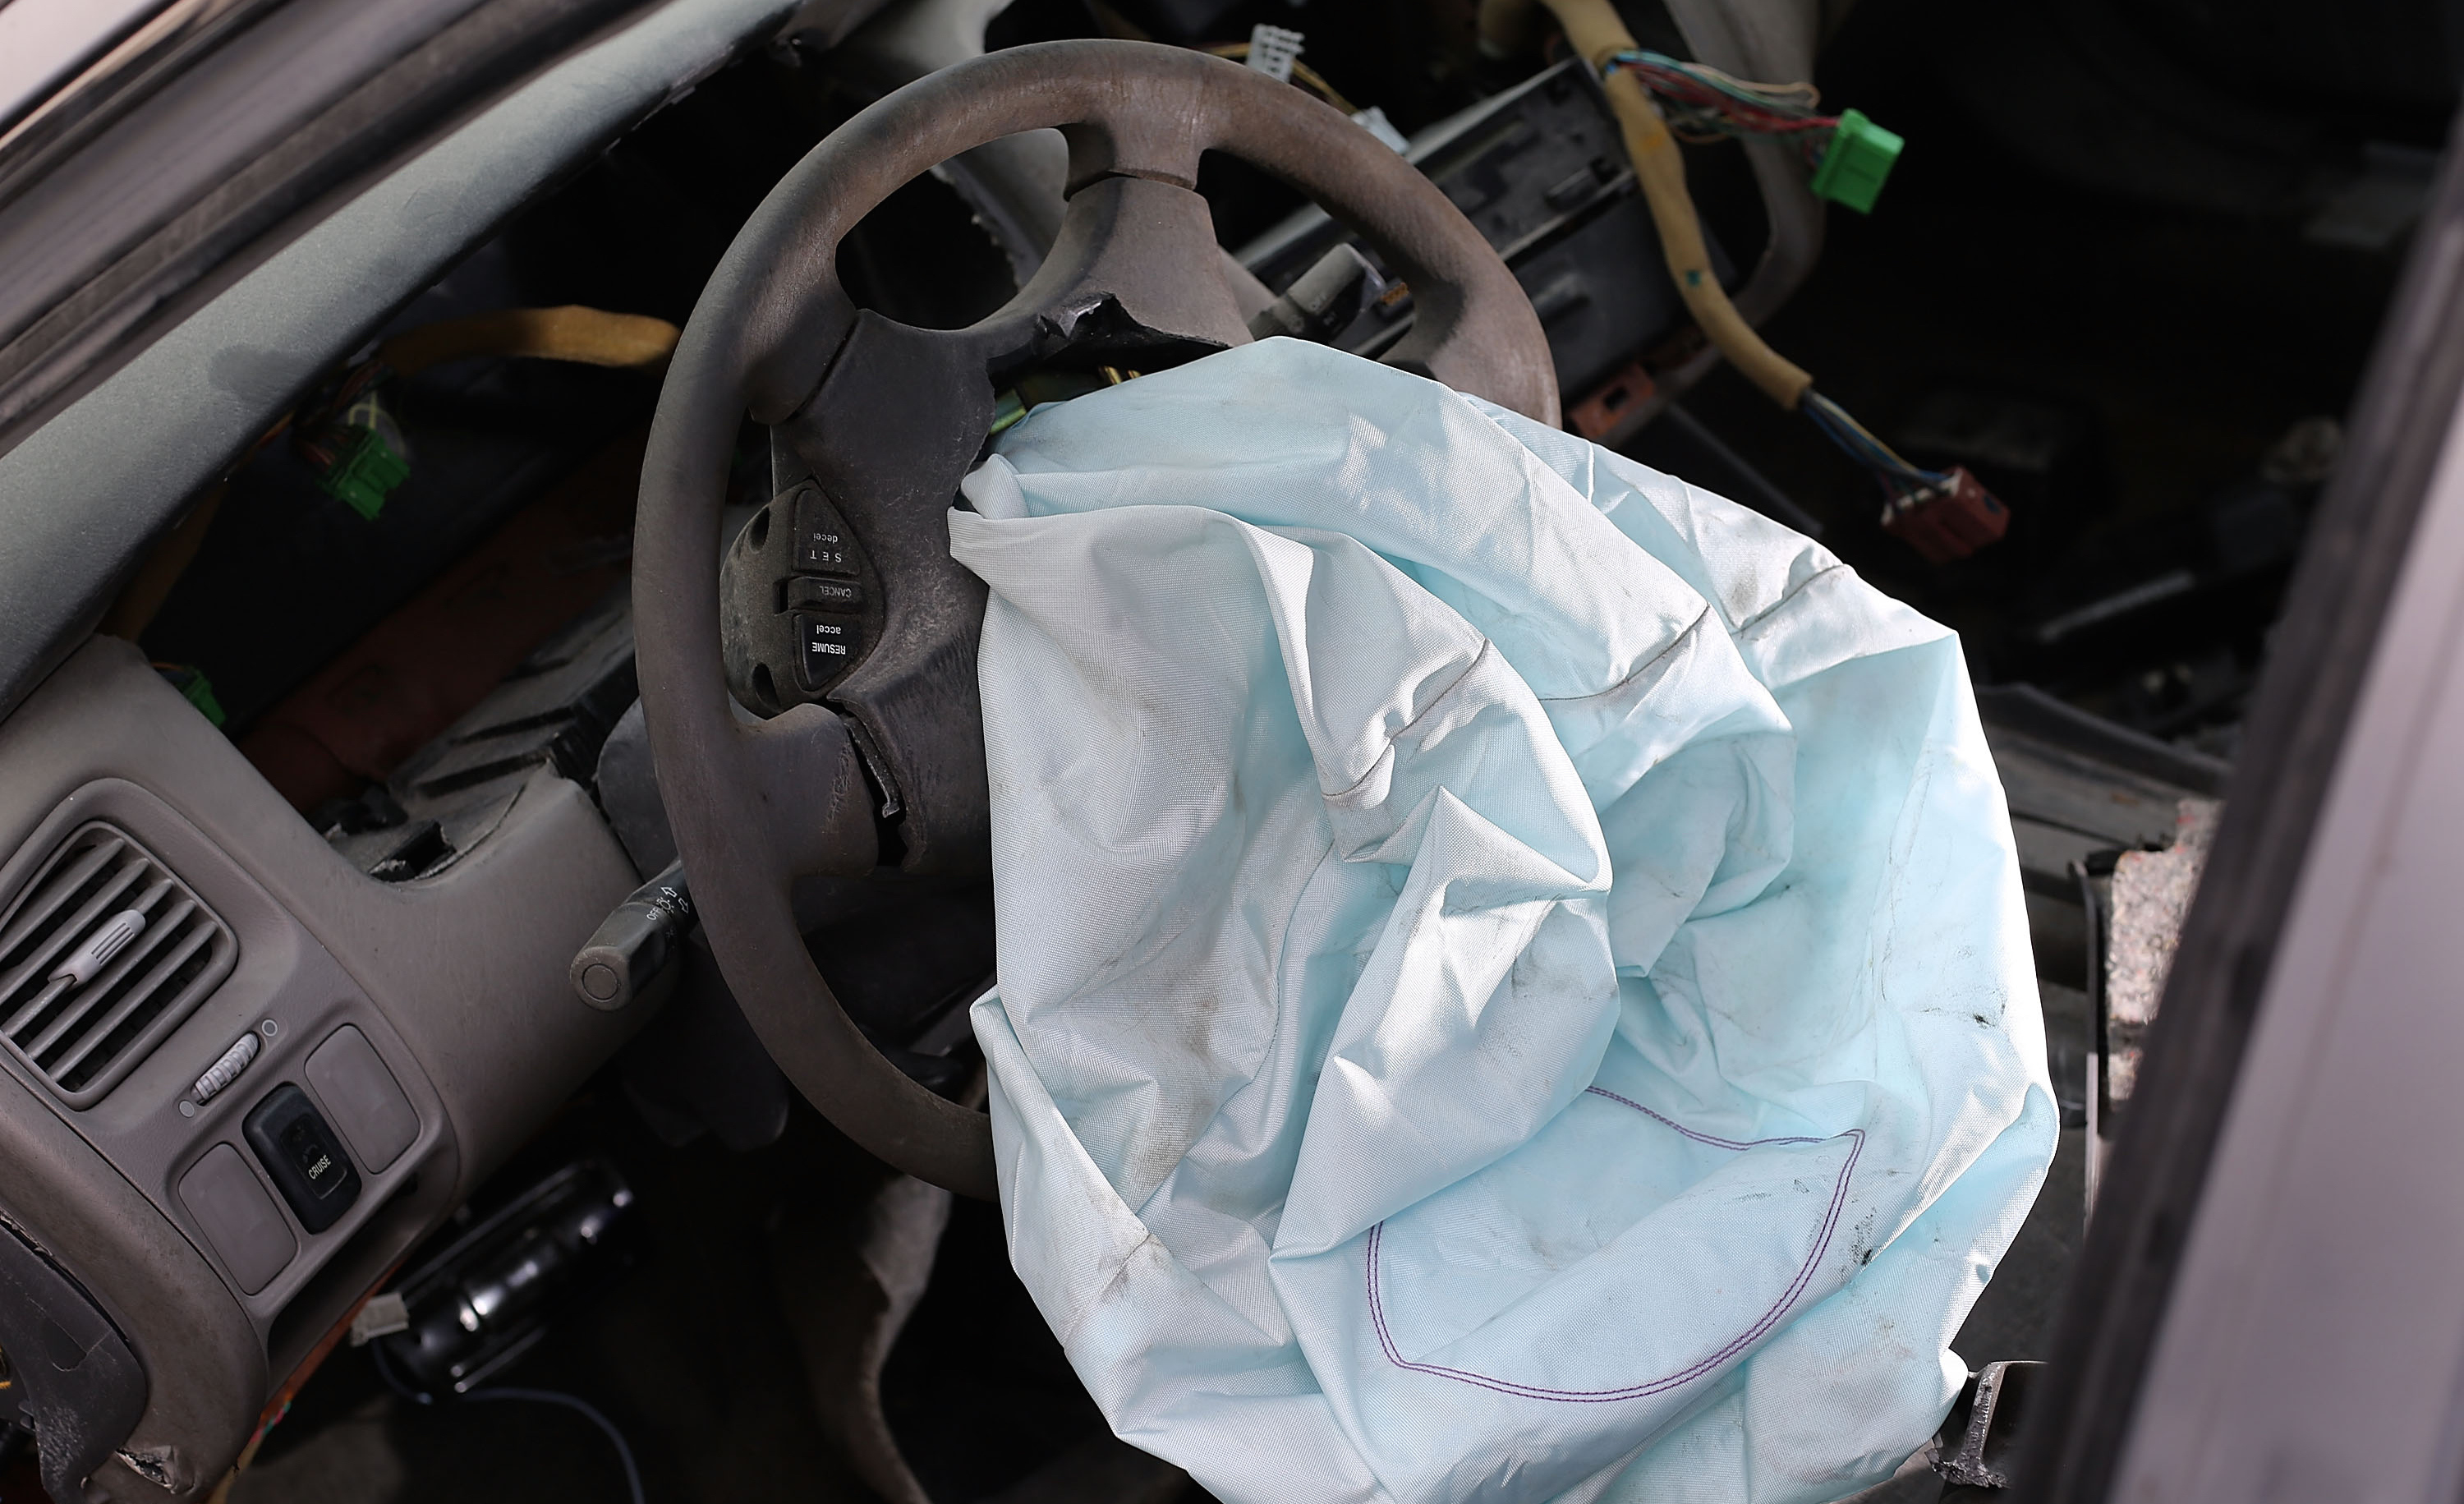 Honda Motors to compensate its U.S. dealers over Takata airbags